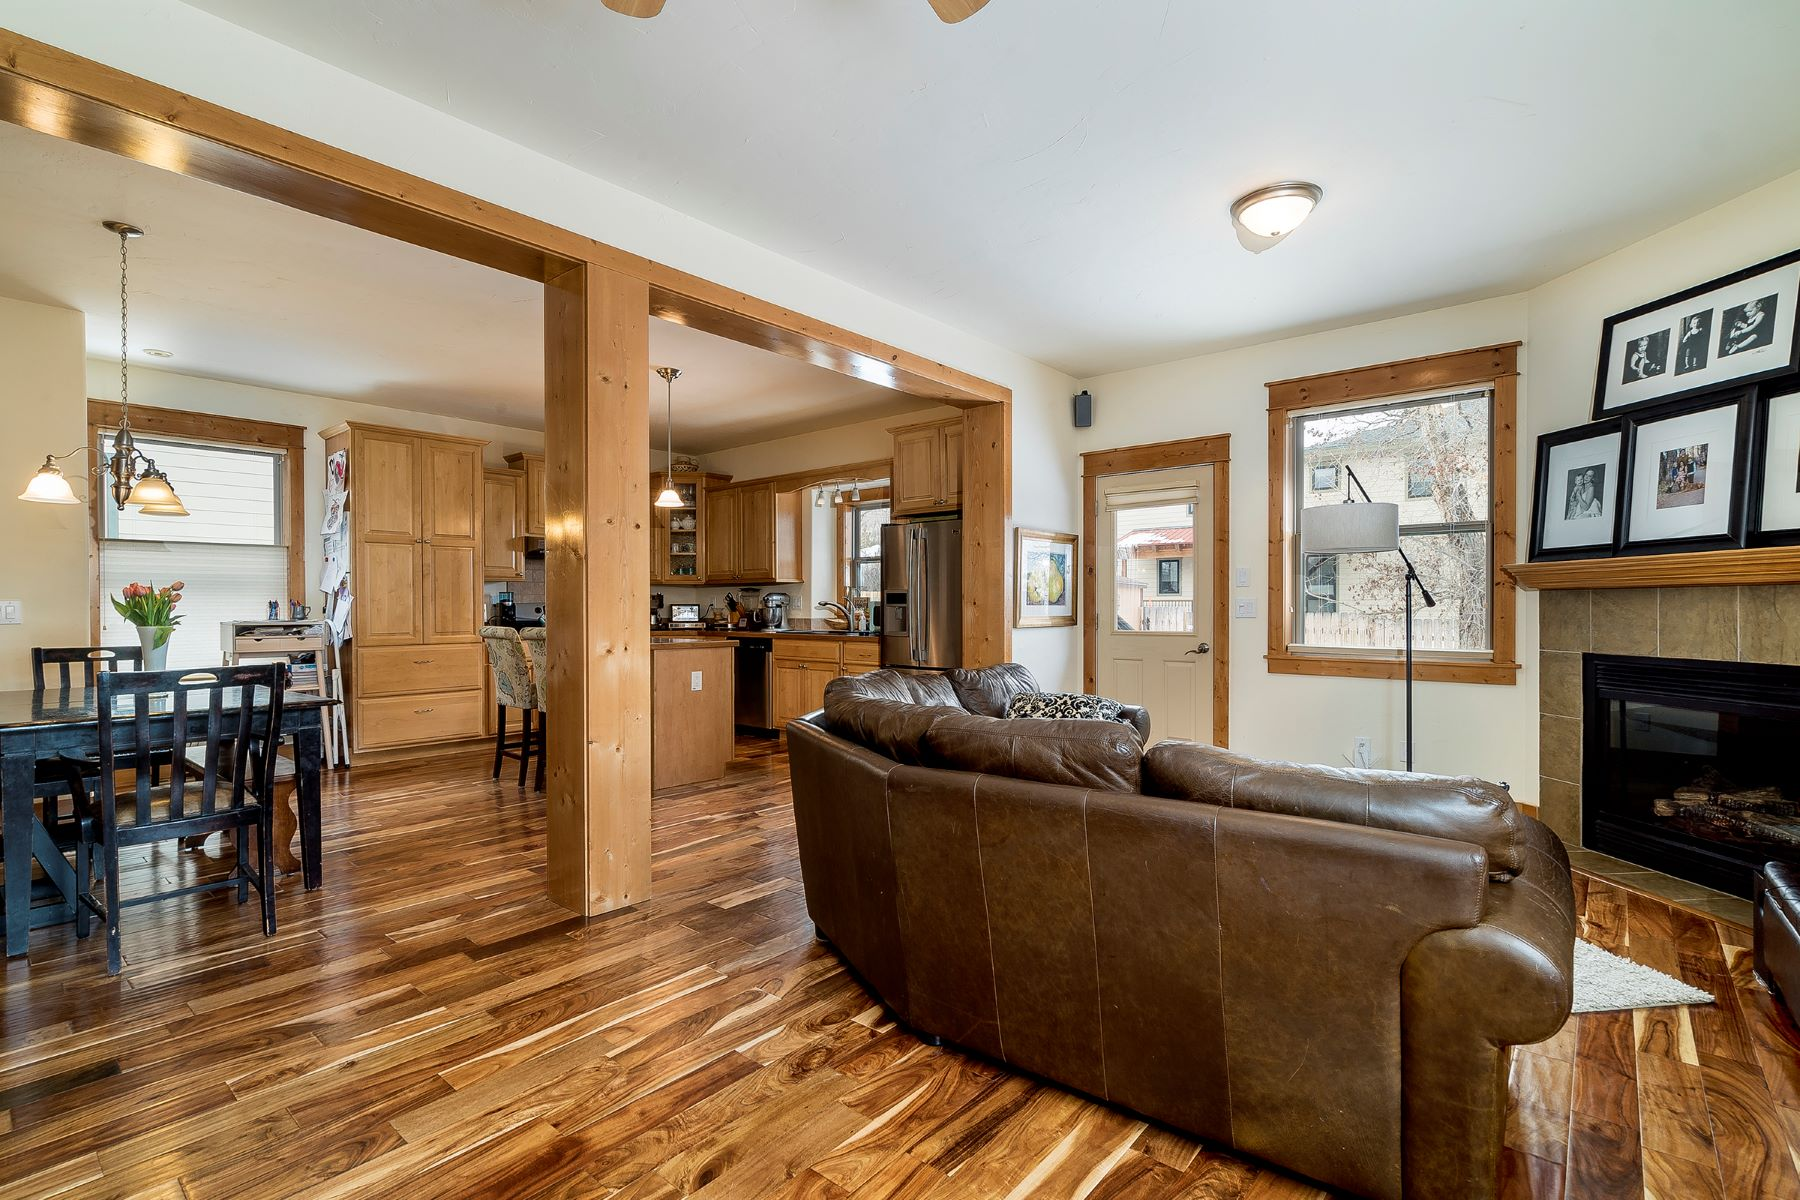 Single Family Home for Active at Fairview Neighborhood of Steamboat Springs, CO 605 Evans St Steamboat Springs, Colorado 80487 United States